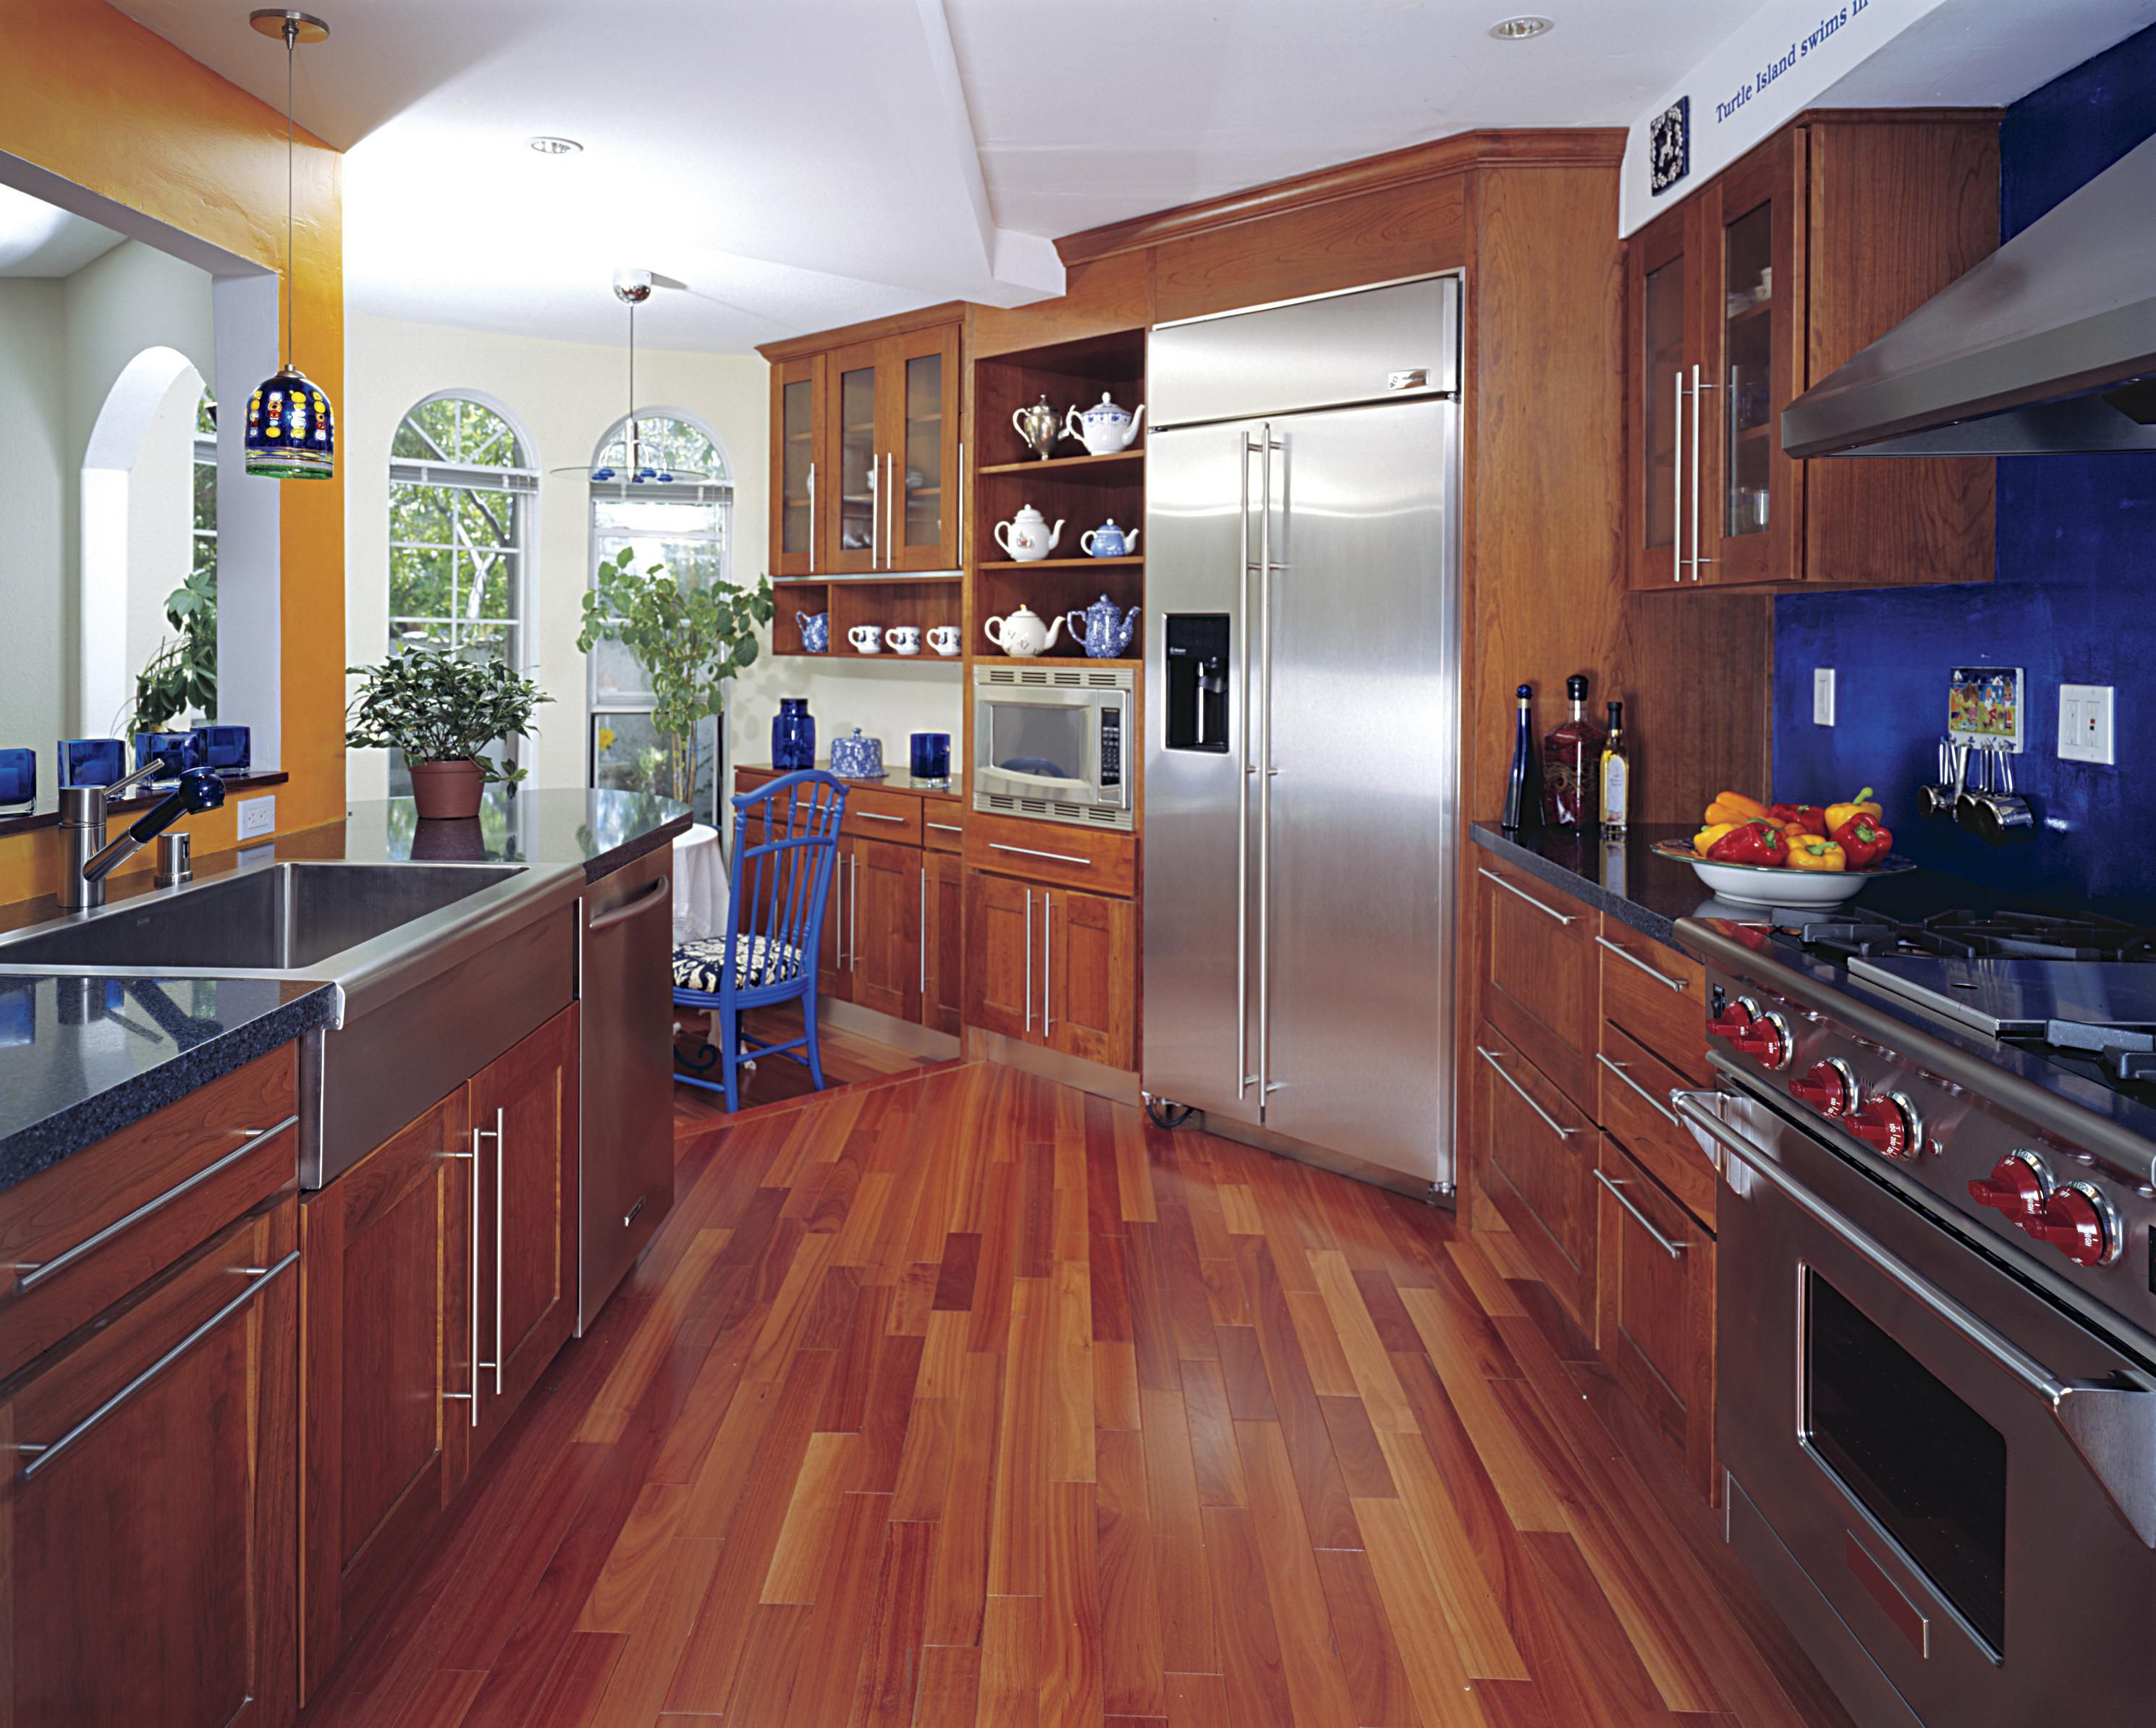 hardwood floor manufacturers ratings of hardwood floor in a kitchen is this allowed pertaining to 186828472 56a49f3a5f9b58b7d0d7e142